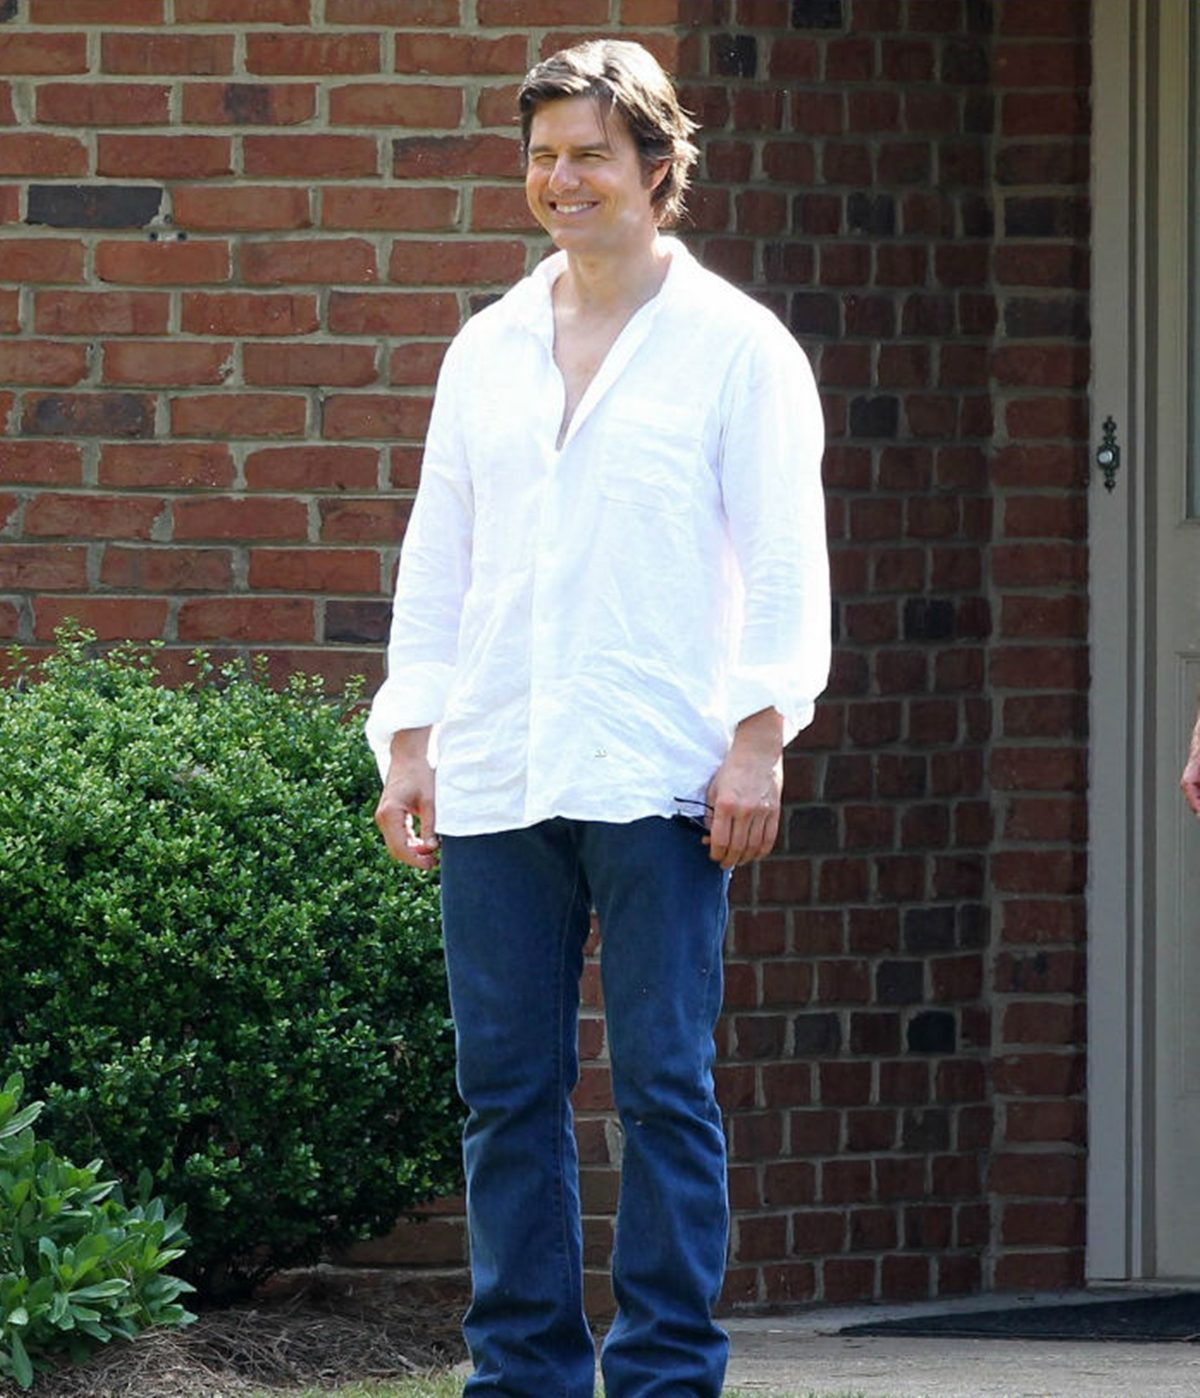 10 2 10 Photos Tom Cruise Does NOT Want You To See